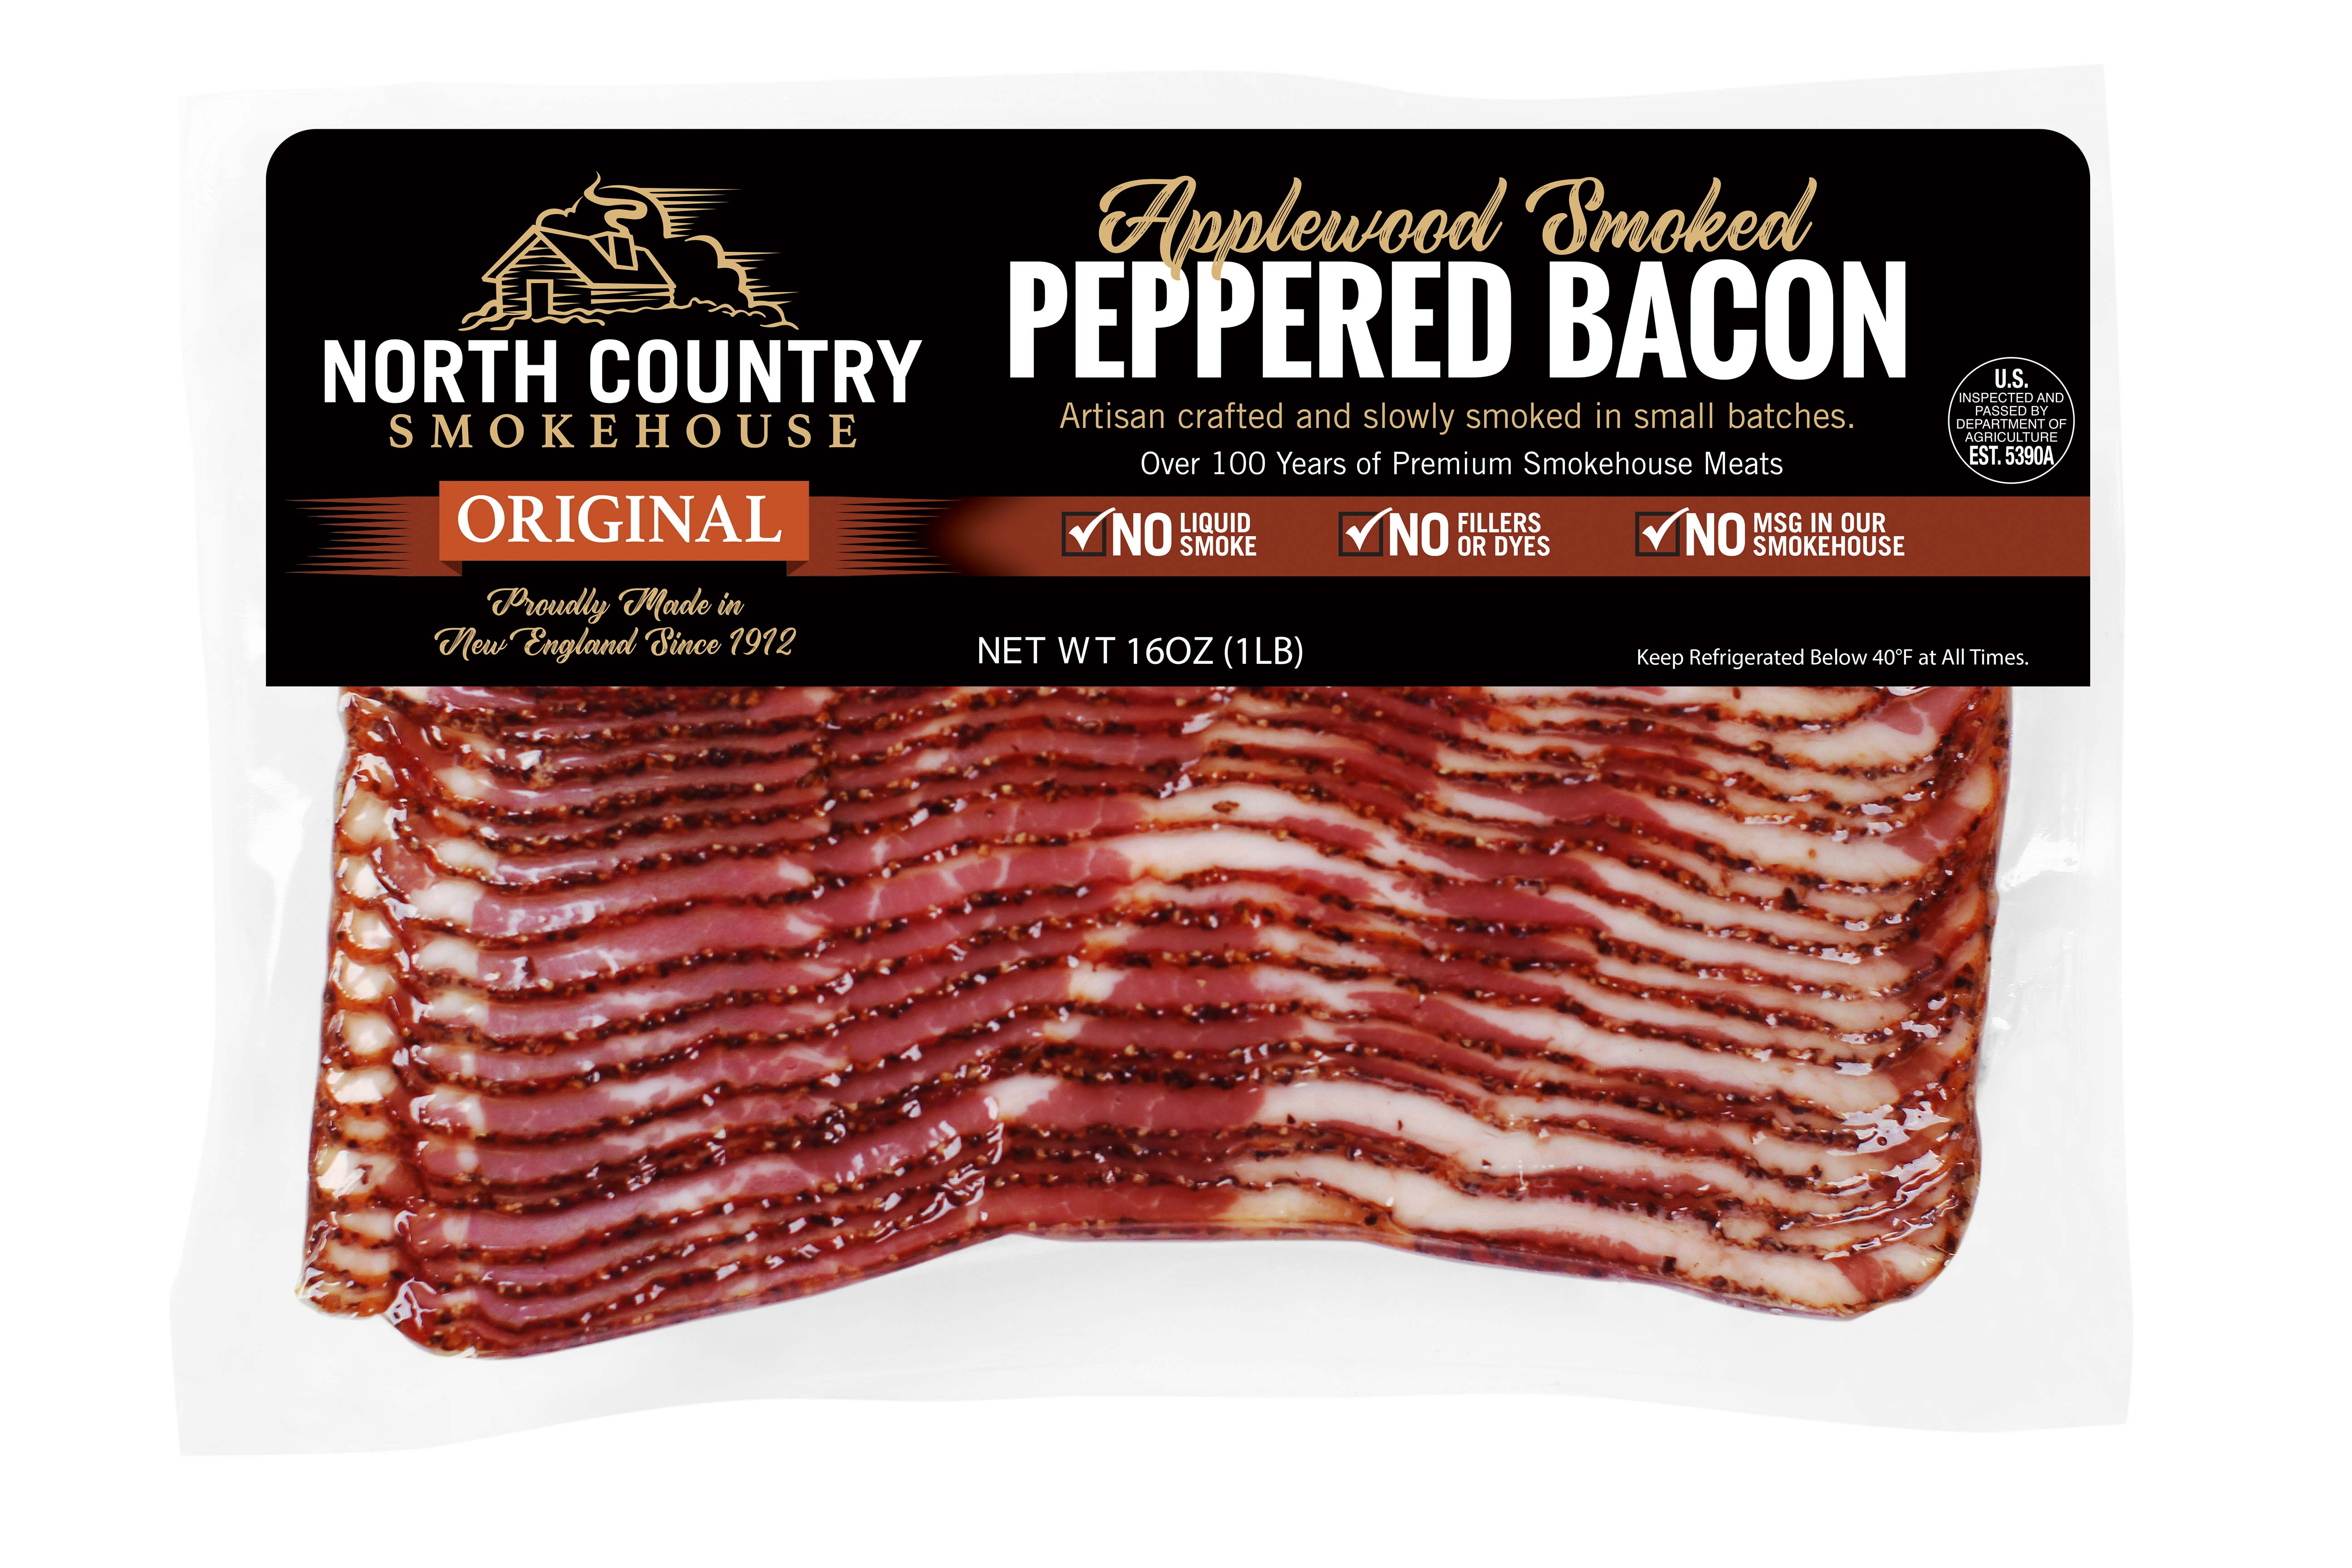 Original Applewood Smoked Peppered Bacon - 2, 1 lb. packages